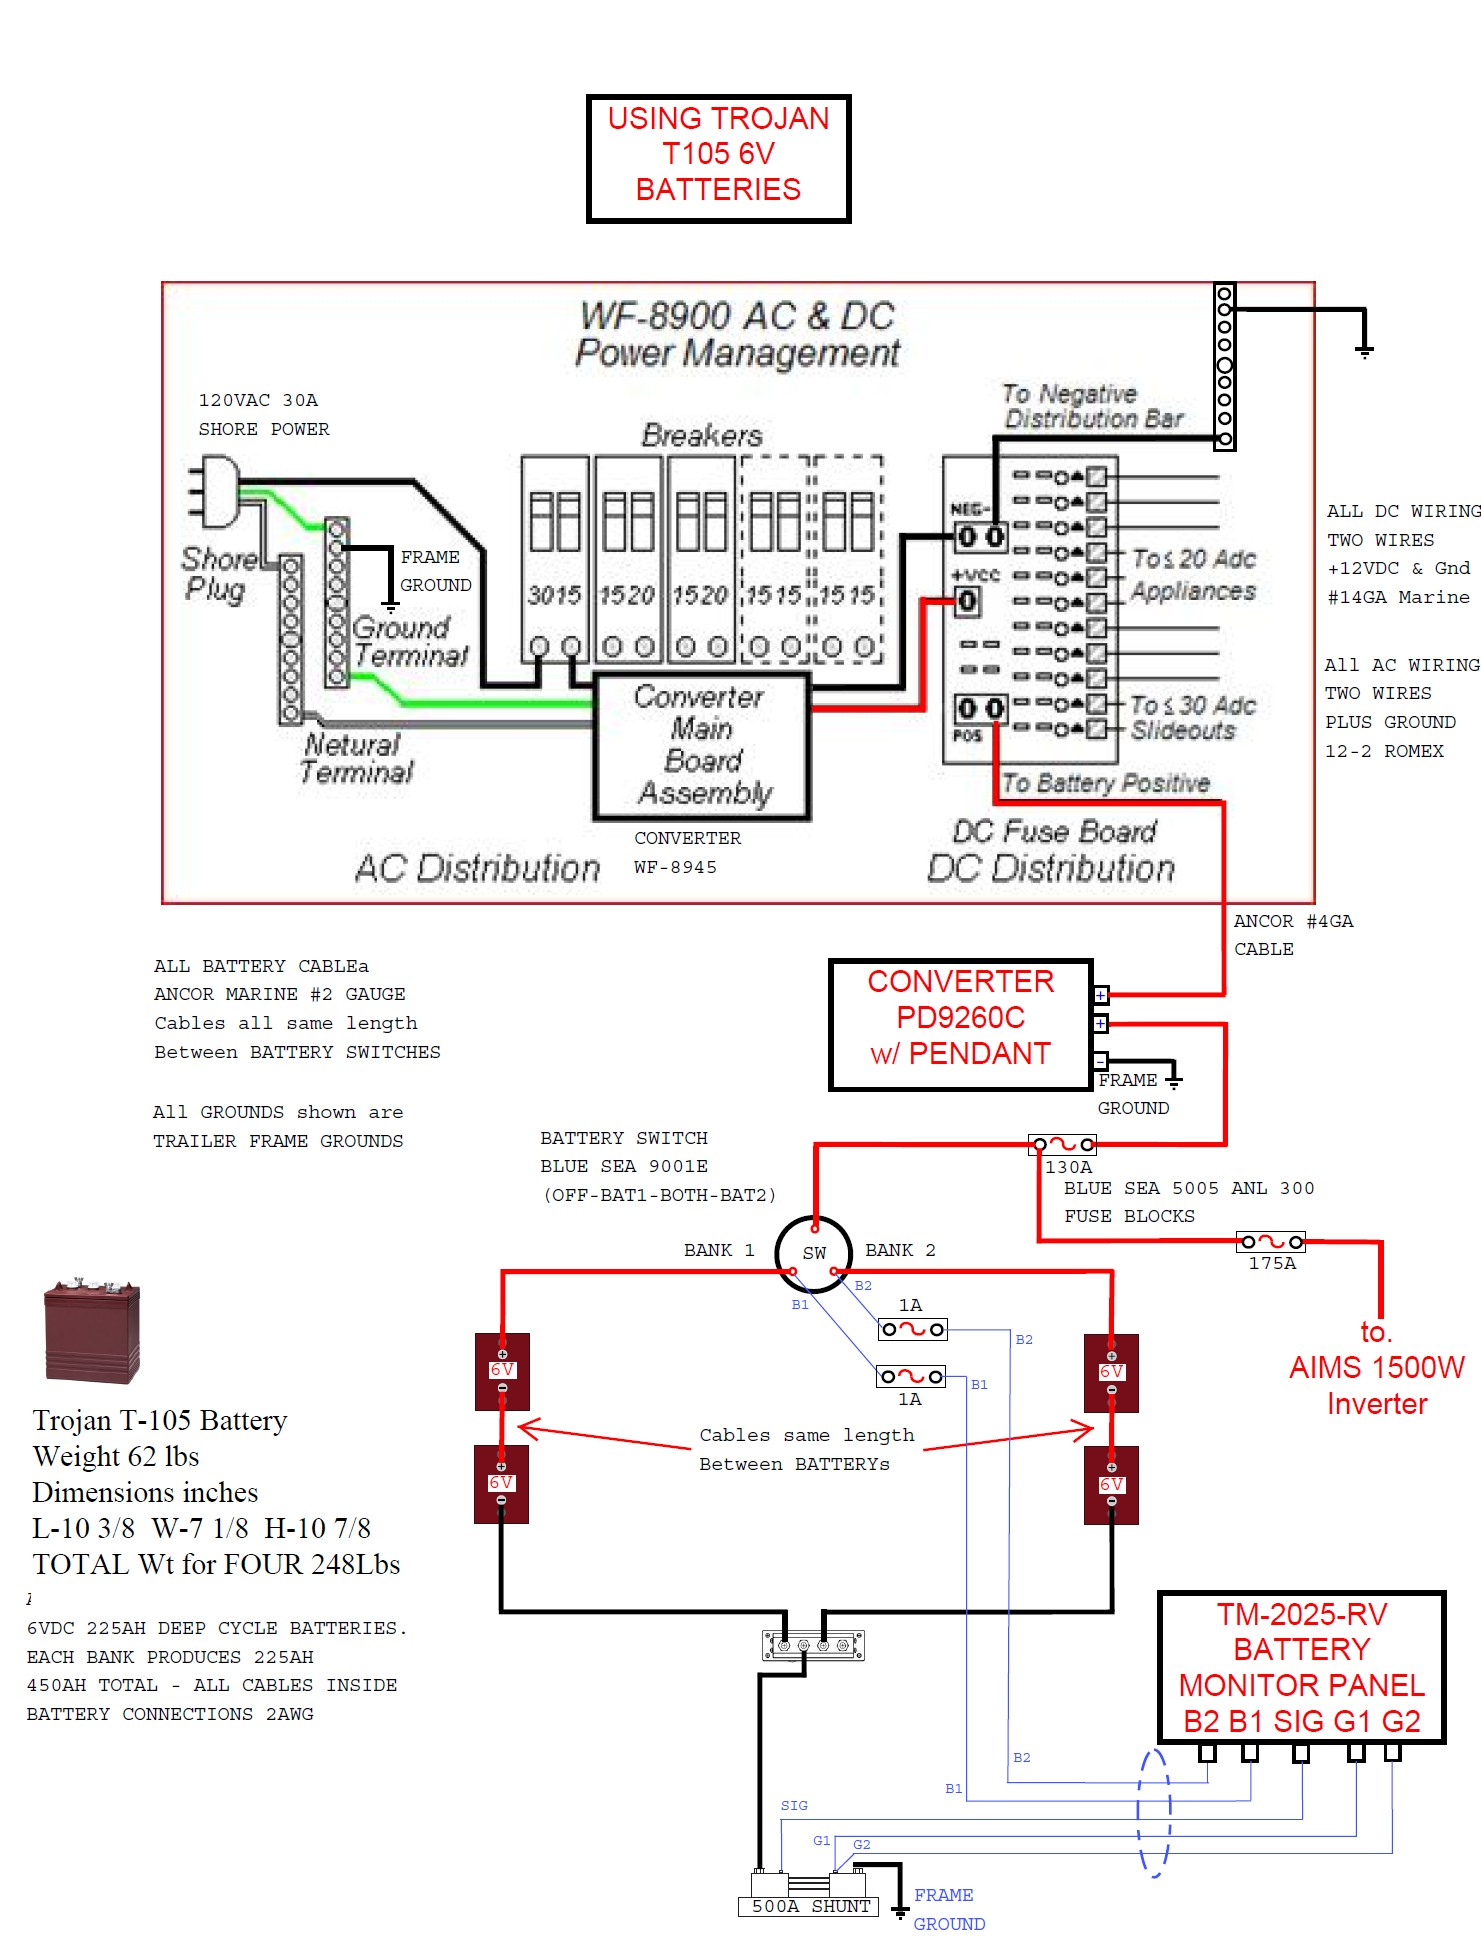 Dualry Disconnect Switch And Wiring Diagram Saleexpert Me Marine Boat System Dual Battery Schematic Wires Electrical